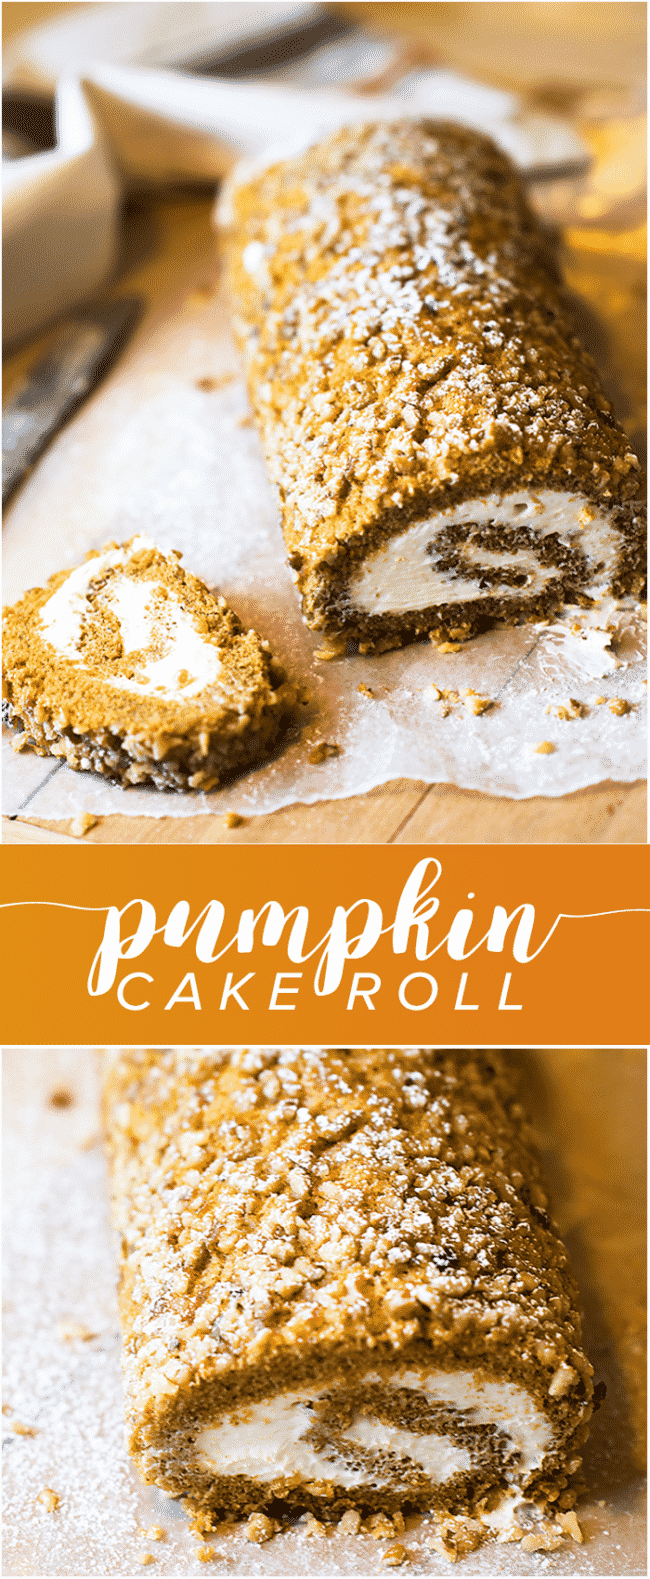 Pumpkin Cake Roll Recipe - Making a pumpkin roll isn't as hard as you think! This yummy pumpkin cake roll is a family favorite every fall.